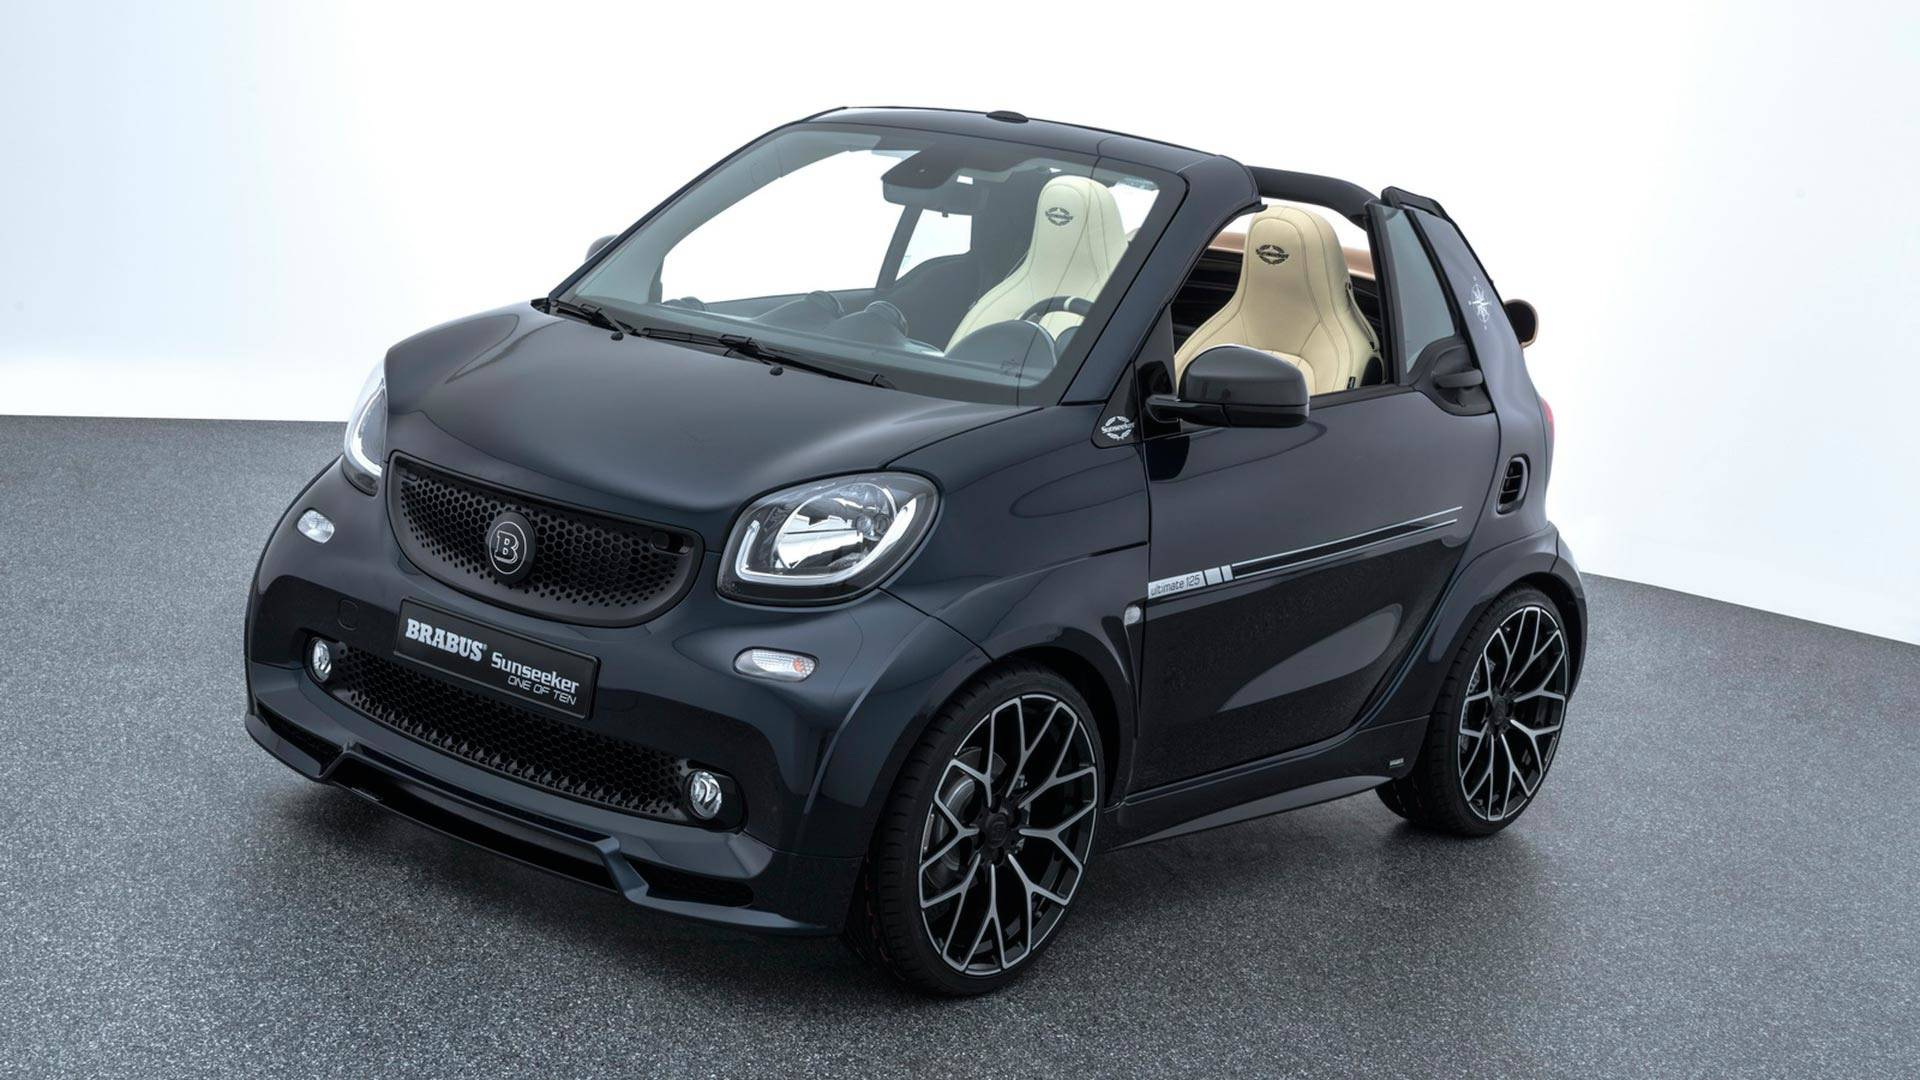 Mercedes Smart Car >> Yacht Inspired Brabus Fortwo Costs Mercedes Amg C43 Money